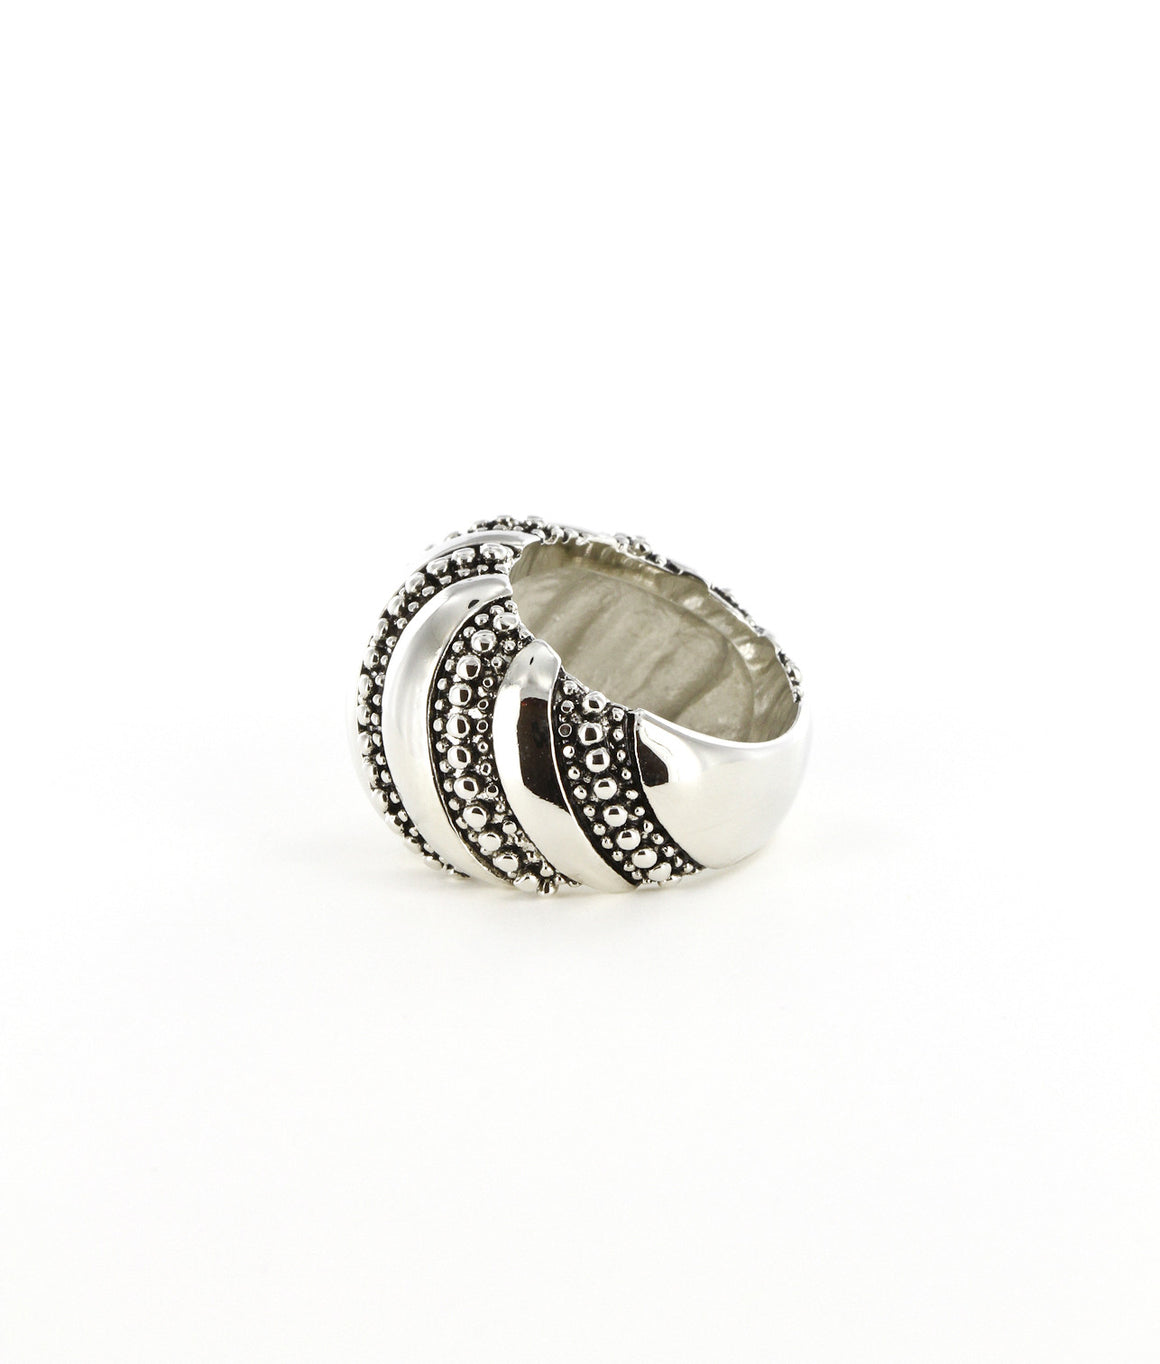 Stripe and dappled polished dome ring.